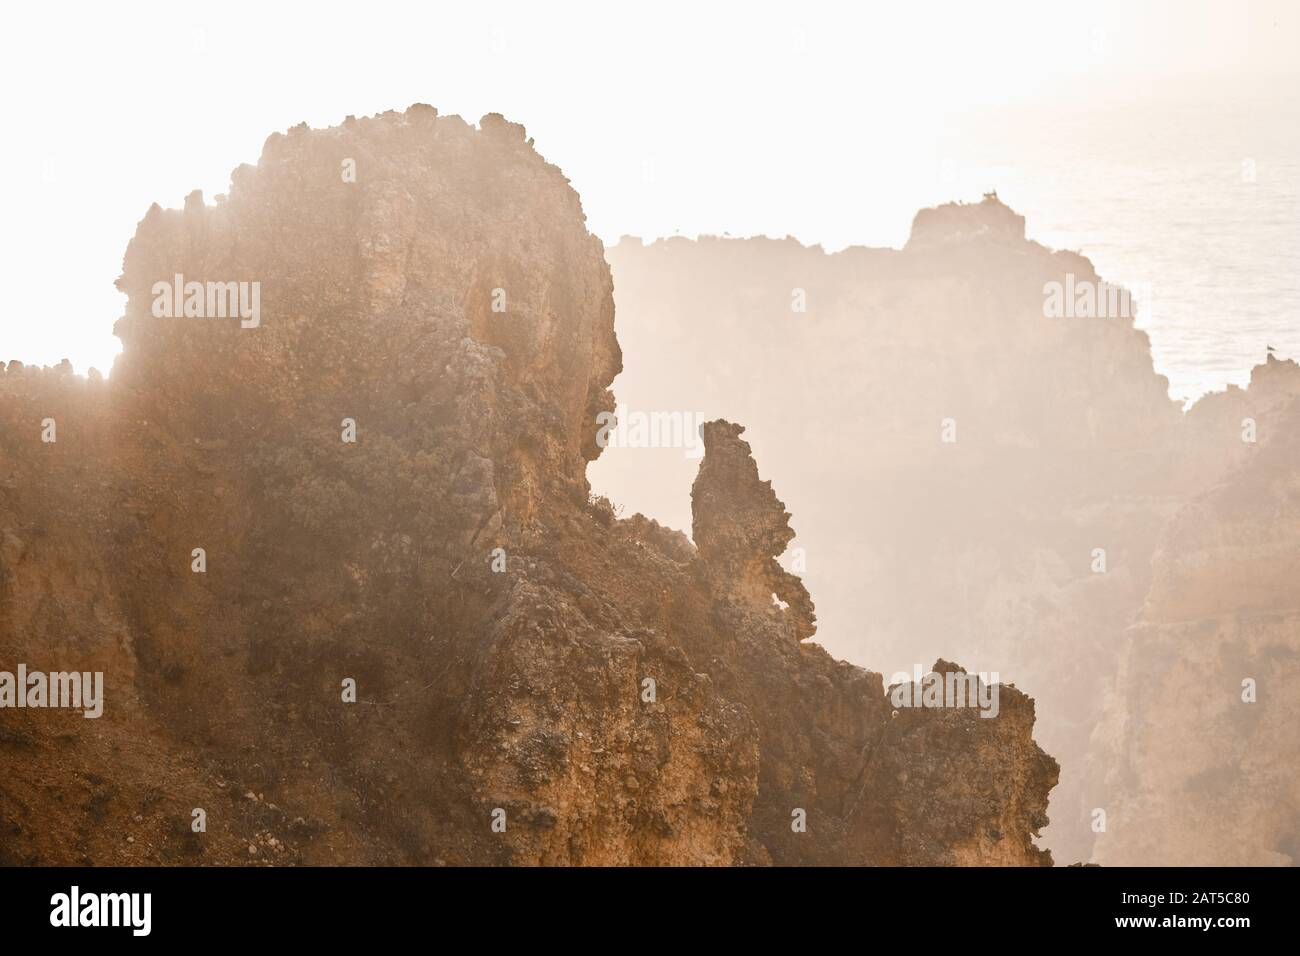 Ponta da Piedade headland with group of rock formations textures background yellow-golden cliffs along limestone coastline, Lagos town, Portugal Stock Photo